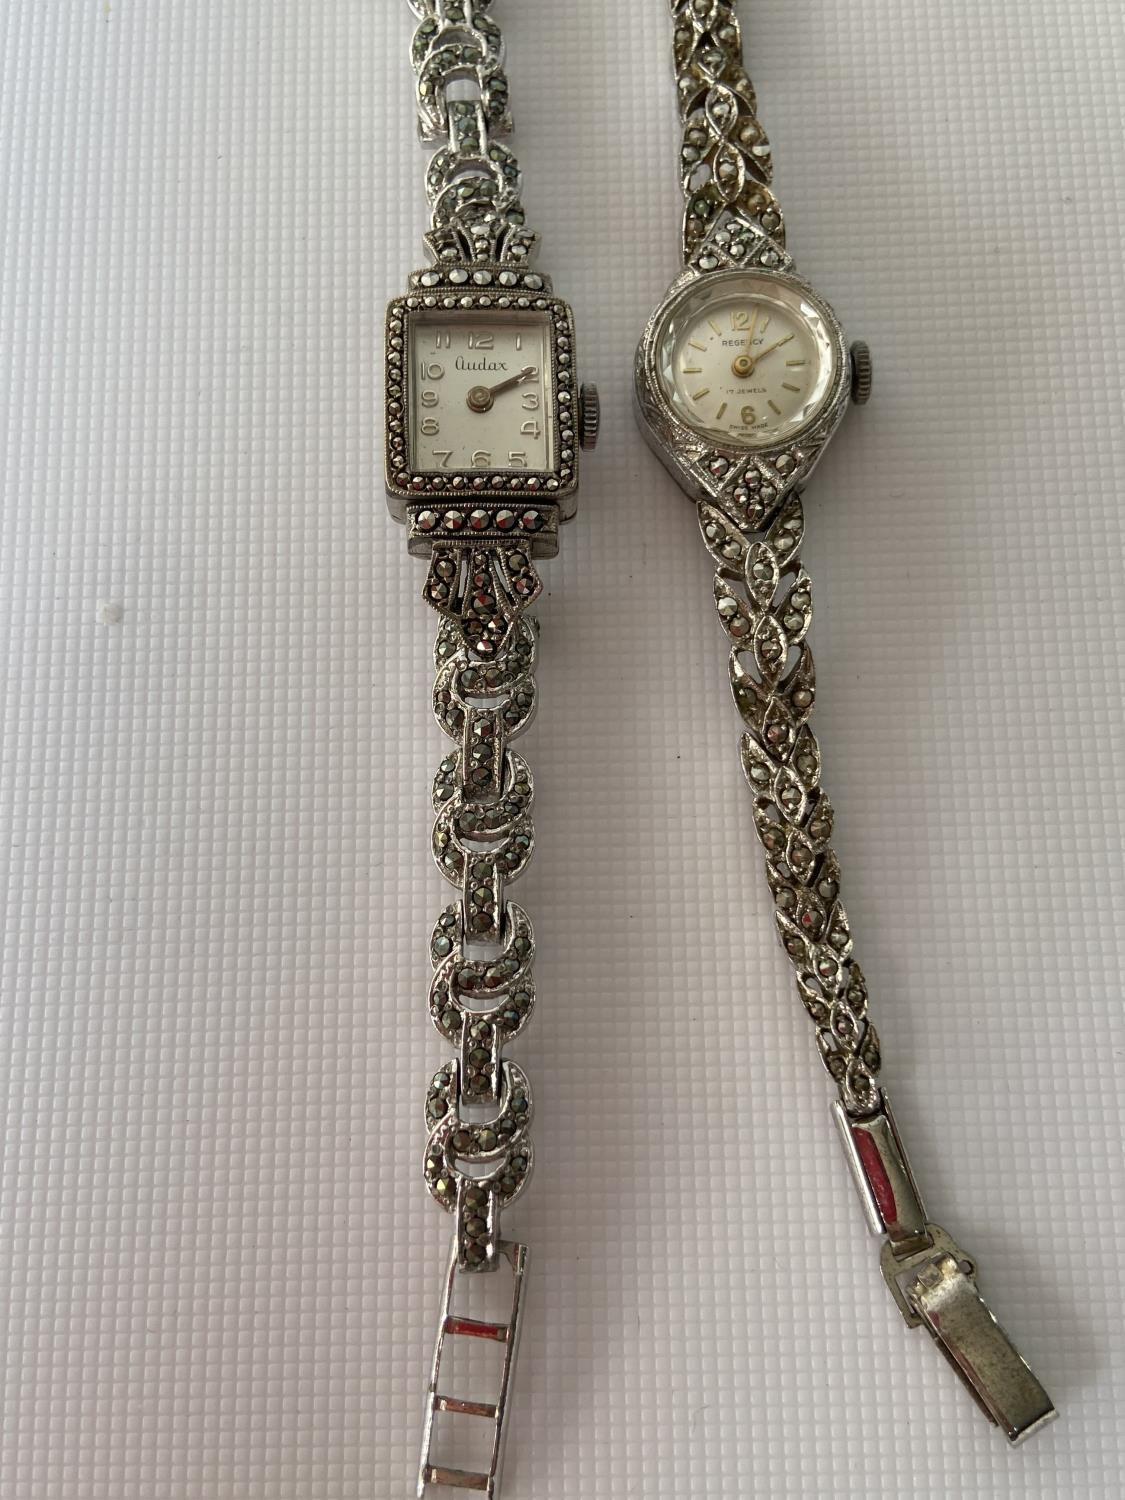 A vintage ladies 925 silver wrist watch produced by Regency [17 jewel] [working] fitted with - Image 5 of 6